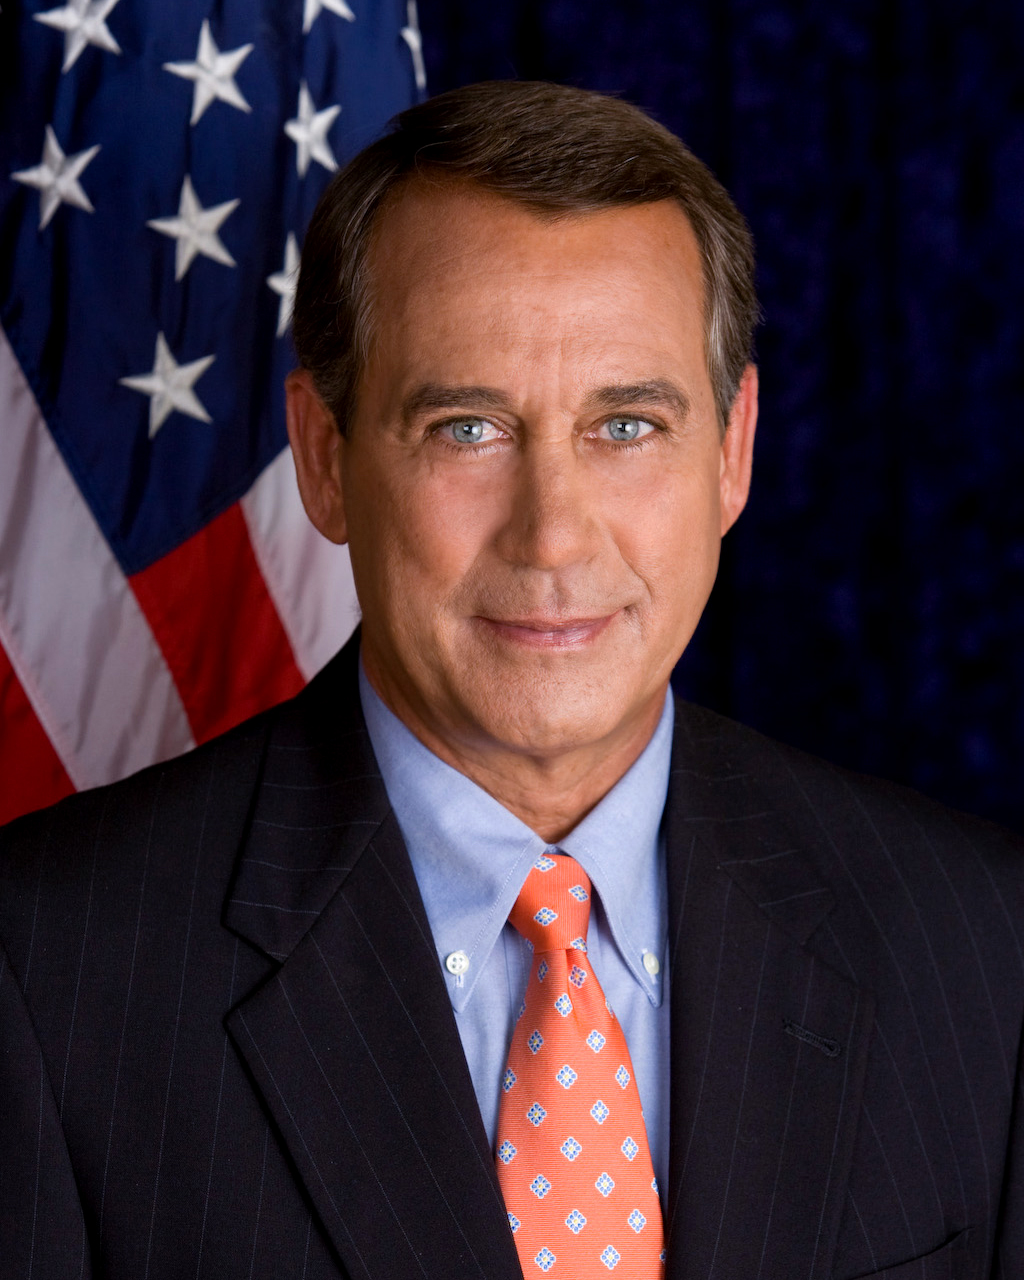 John_Boehner_official_portrait.jpg